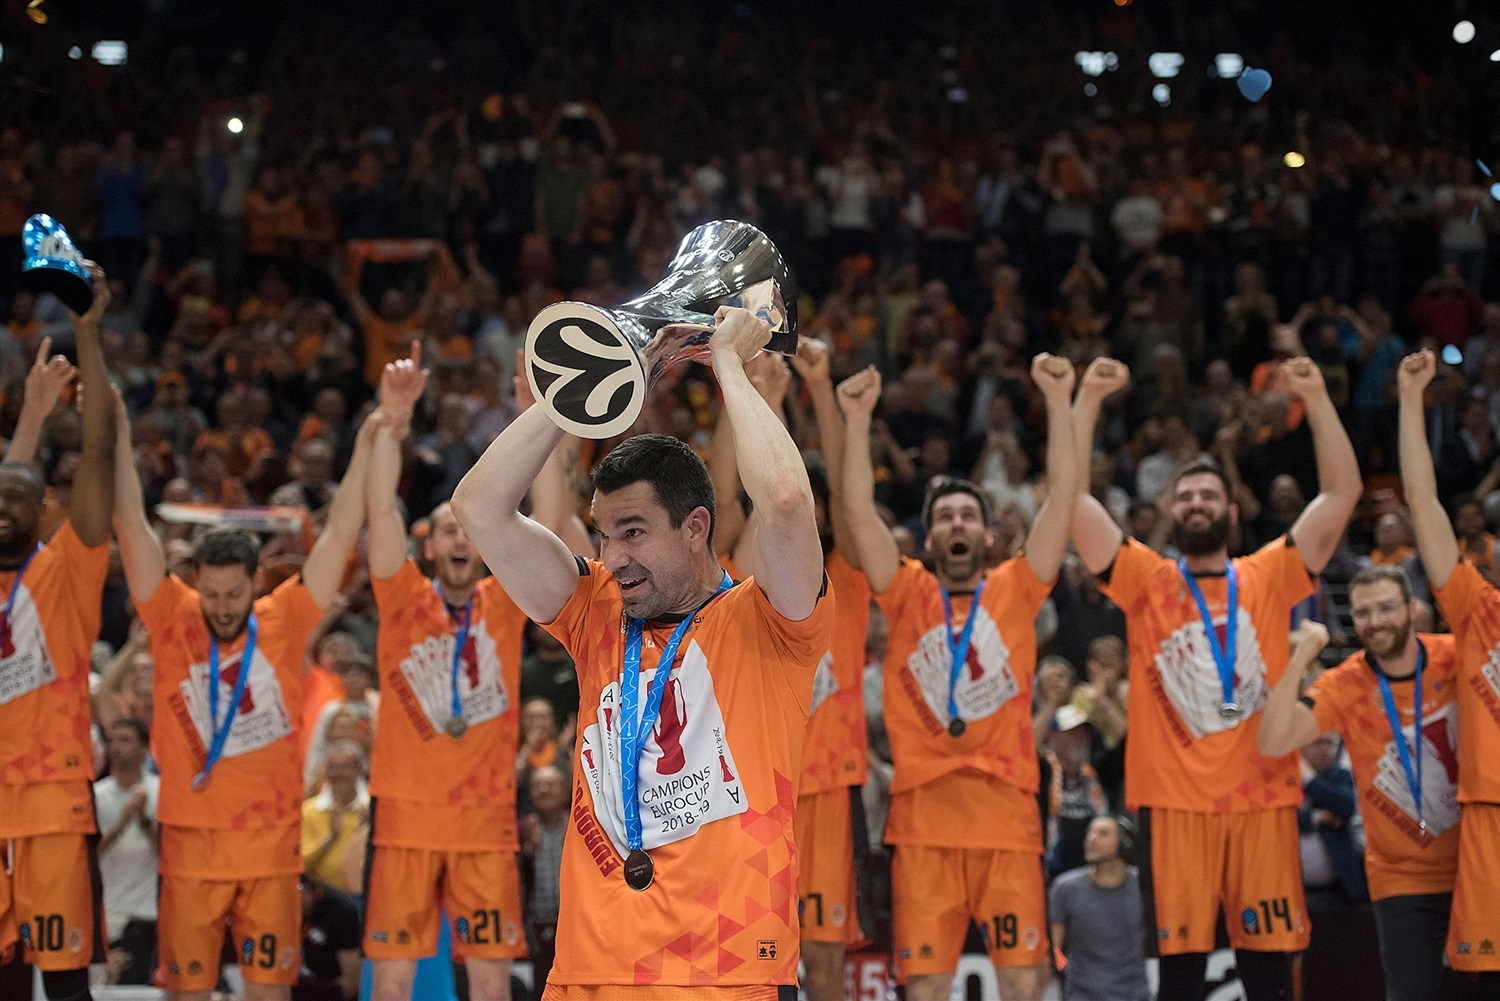 Rafa Martinez - Valencia Basket champ - EuroCup Finals Game 3 - EC18